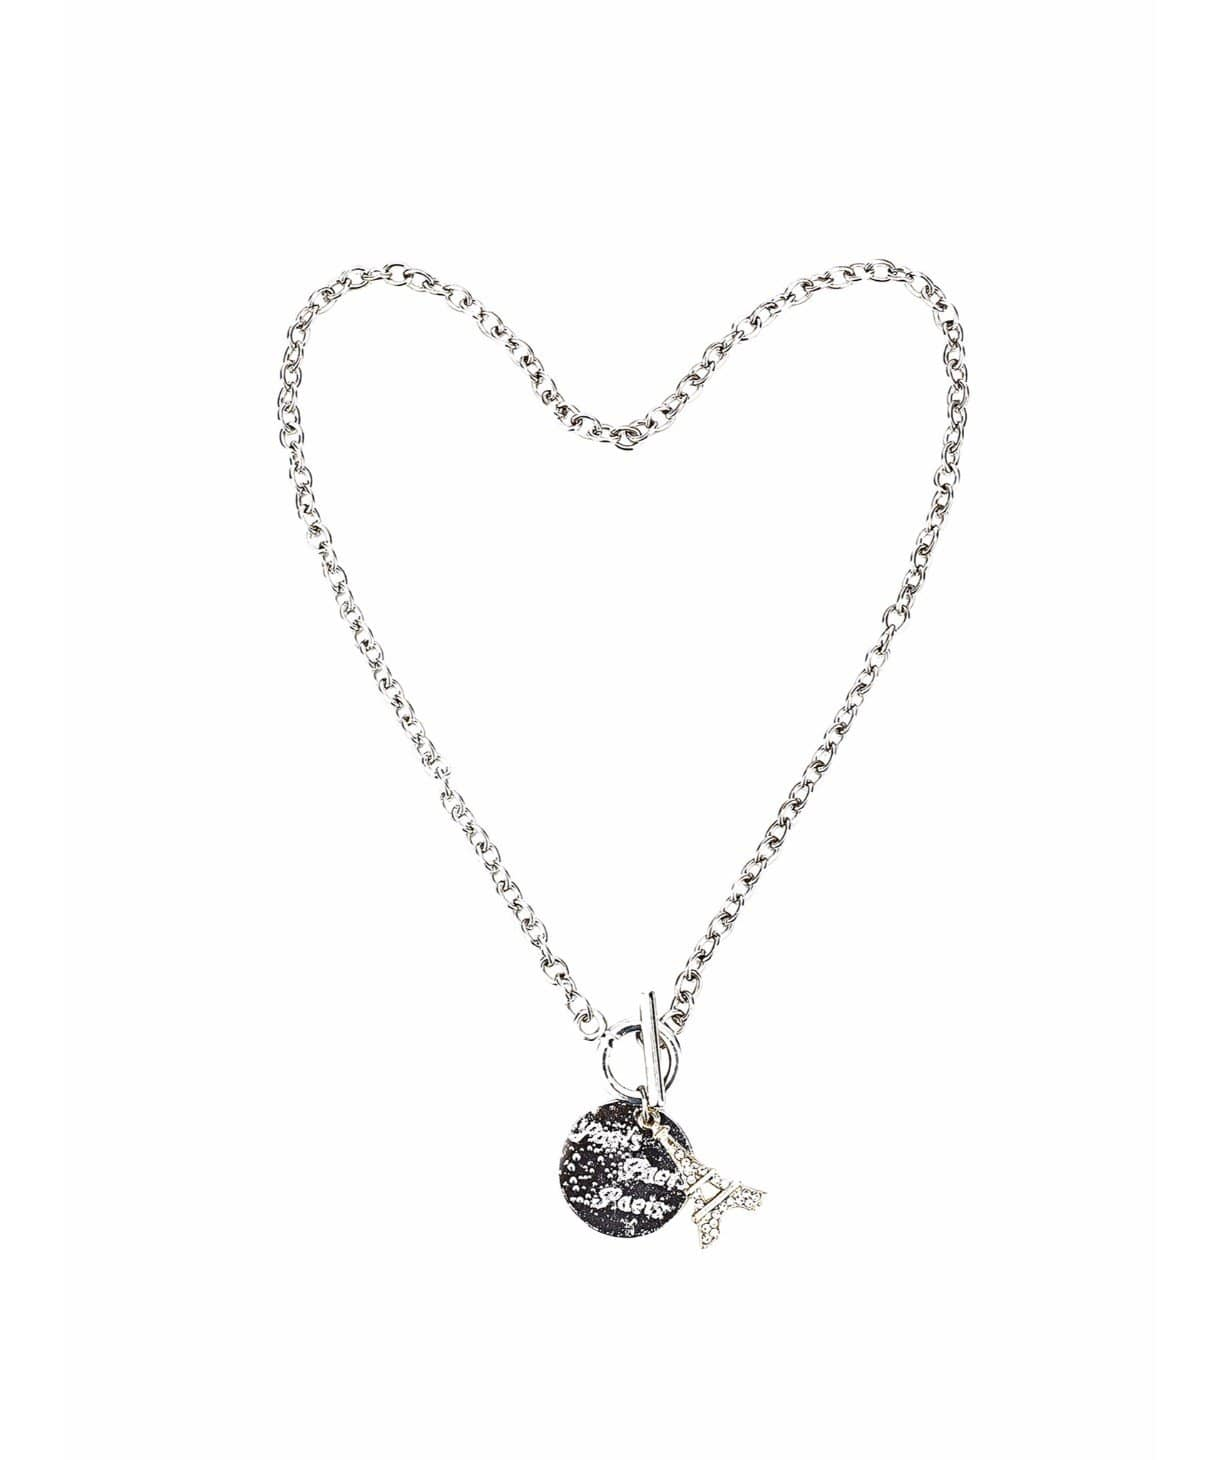 J'adore Paris Necklace - Uptownie